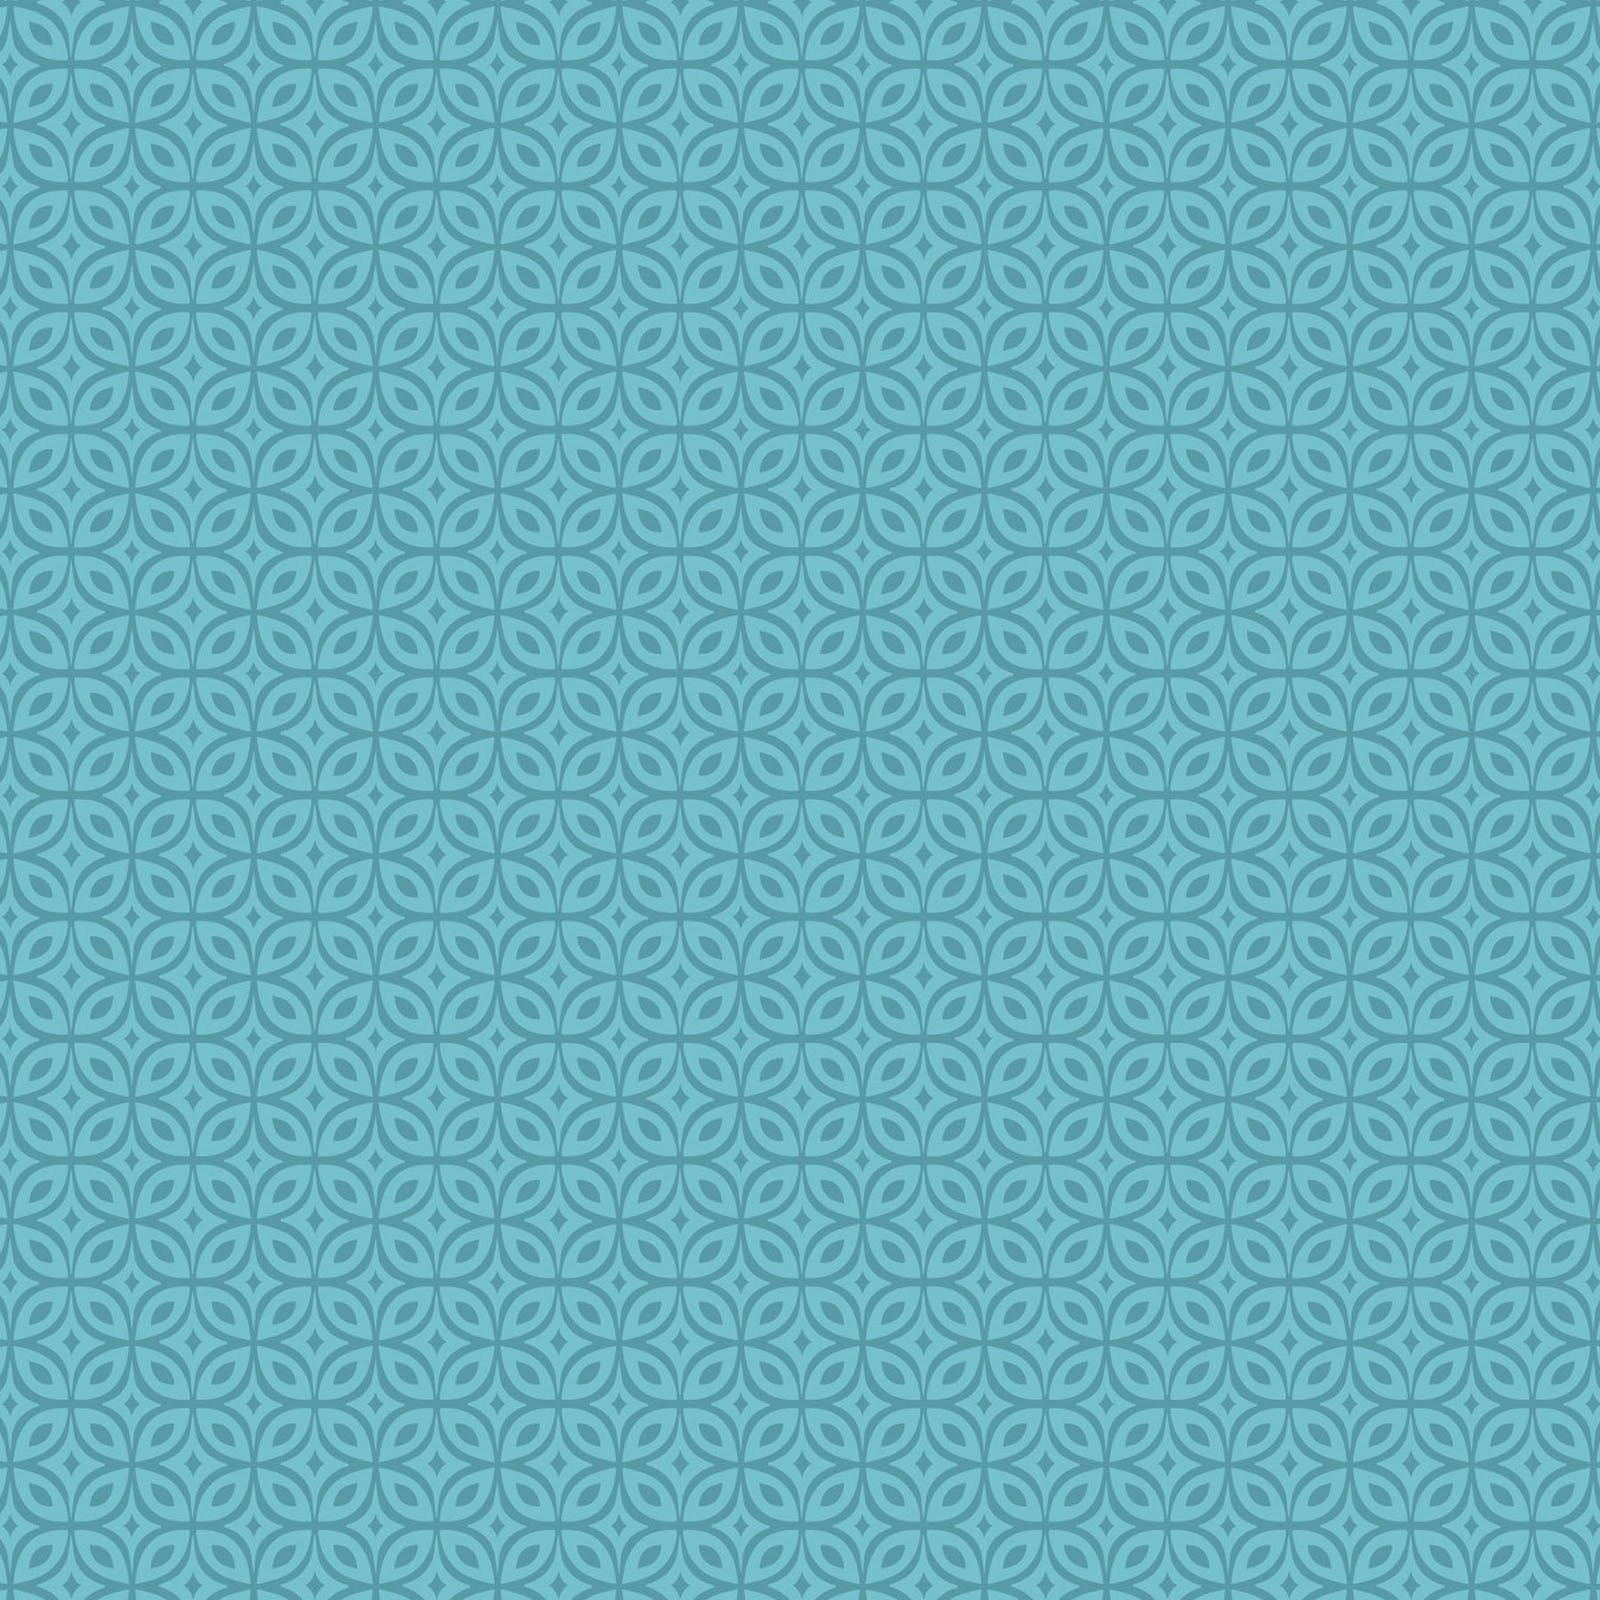 WHIM-4413 T - WHIMSY BY HANG TIGHT STUDIO OPTIC TEAL